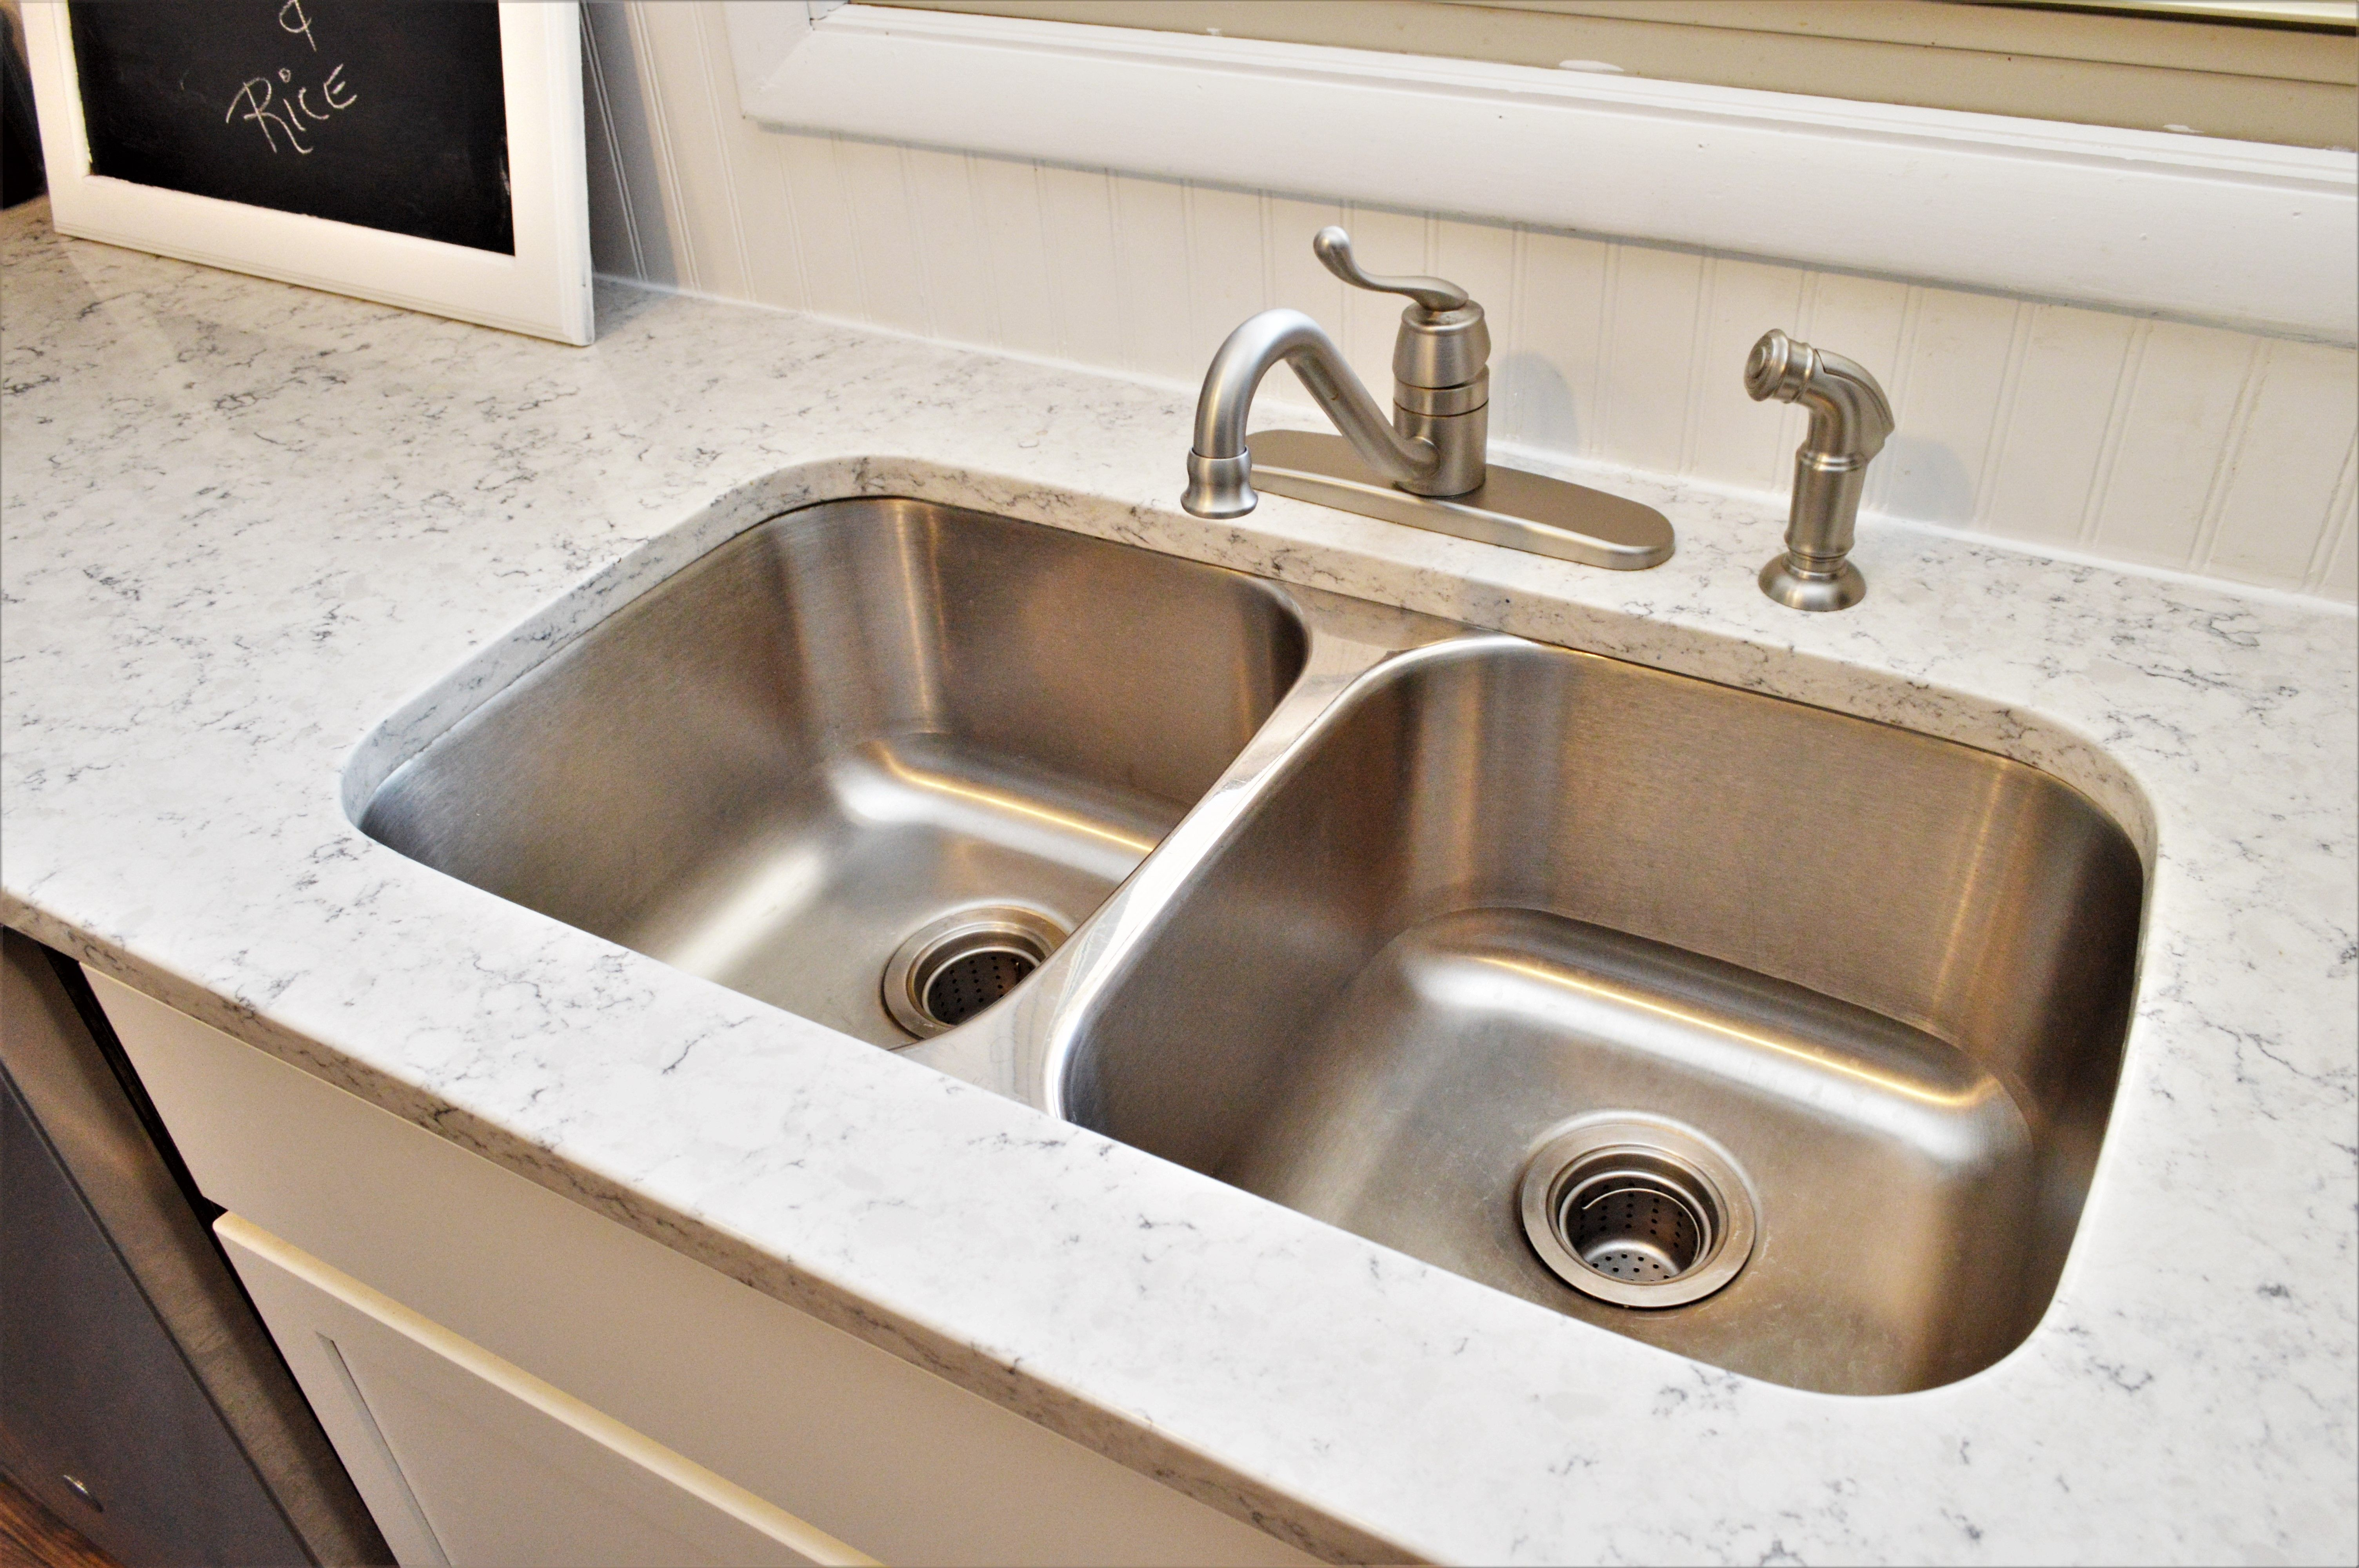 Bailey\'s Cabinets, Pelican, Equal Bowl Undermount Stainless ...